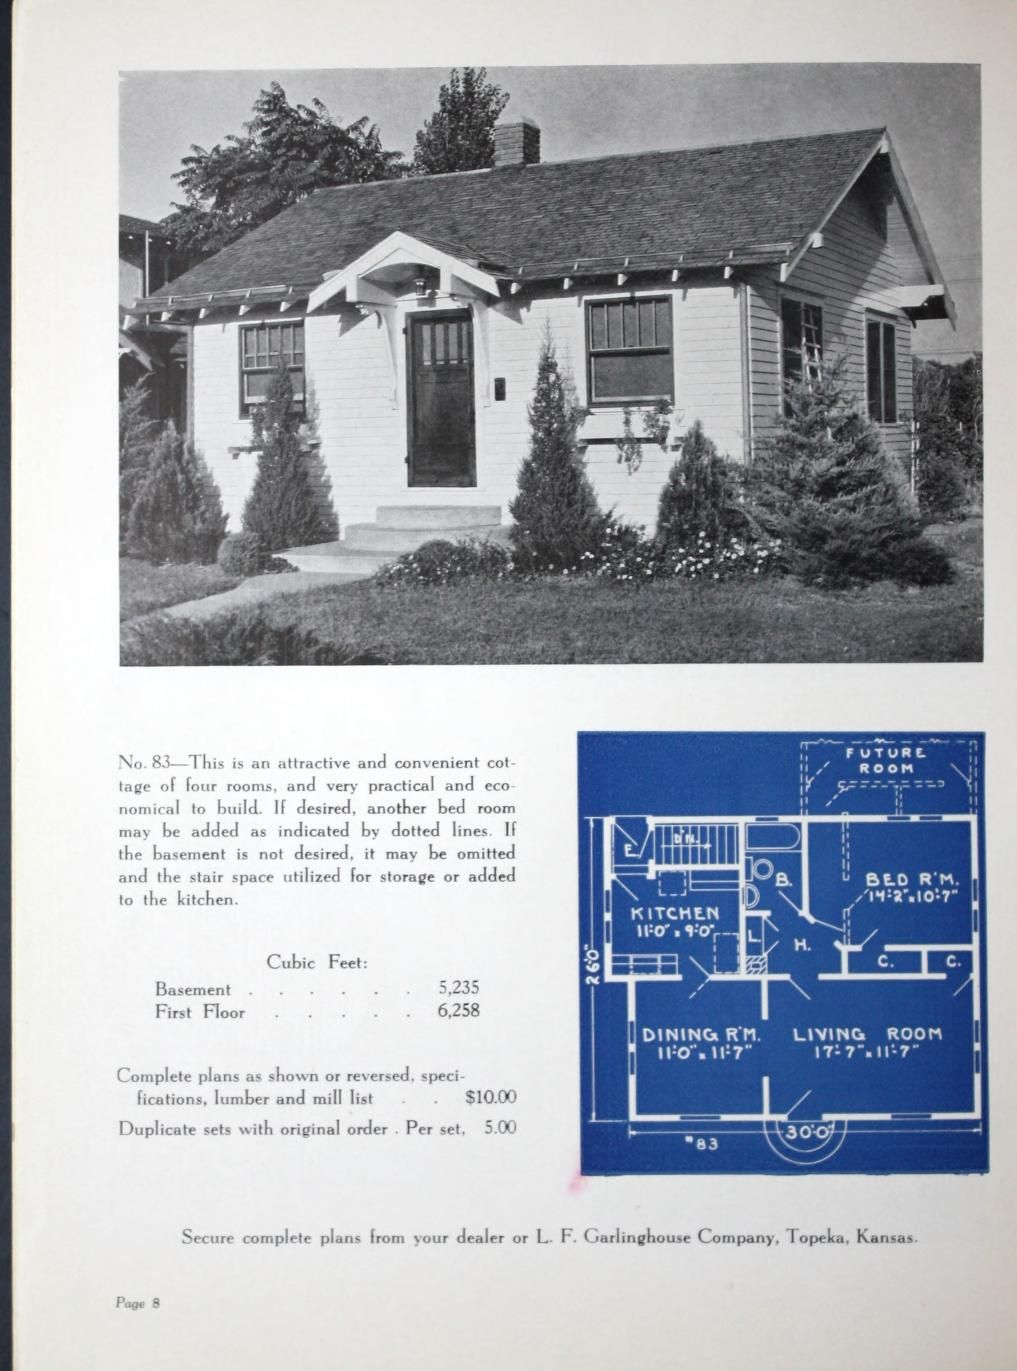 New Small Homes   1938 : L. F. Garlinghouse Co. : Free Download, Borrow,  And Streaming : Internet Archive. Vintage House PlansVintage ...